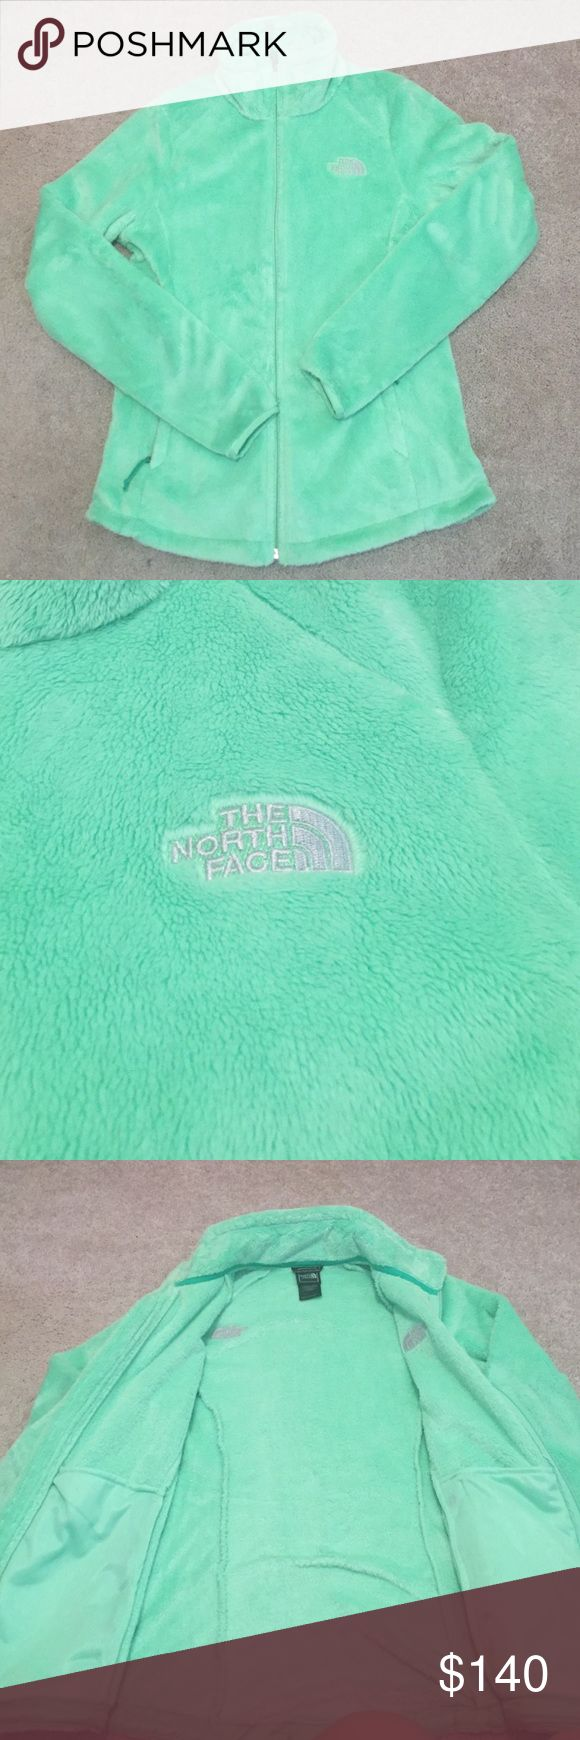 NWOT size small mint green north face fleece New without tags mint green size small north face full zip up fleece. Very warm and a super cute color :) The North Face Jackets & Coats